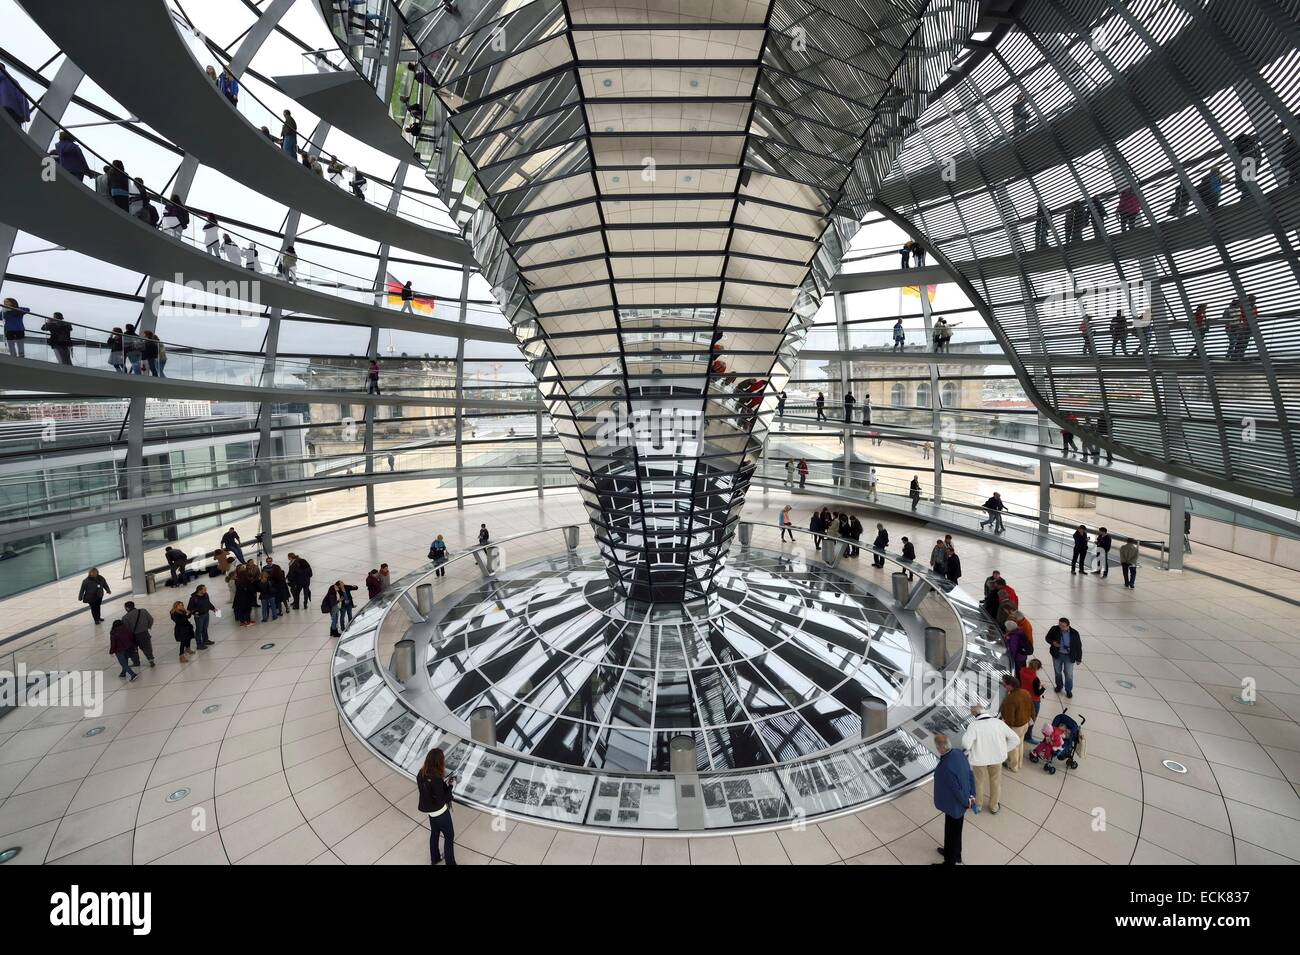 Germany, Berlin, Reichstag, Bundestag glass dome (German Parlement since 1999) by the architect Sir Norman Foster - Stock Image